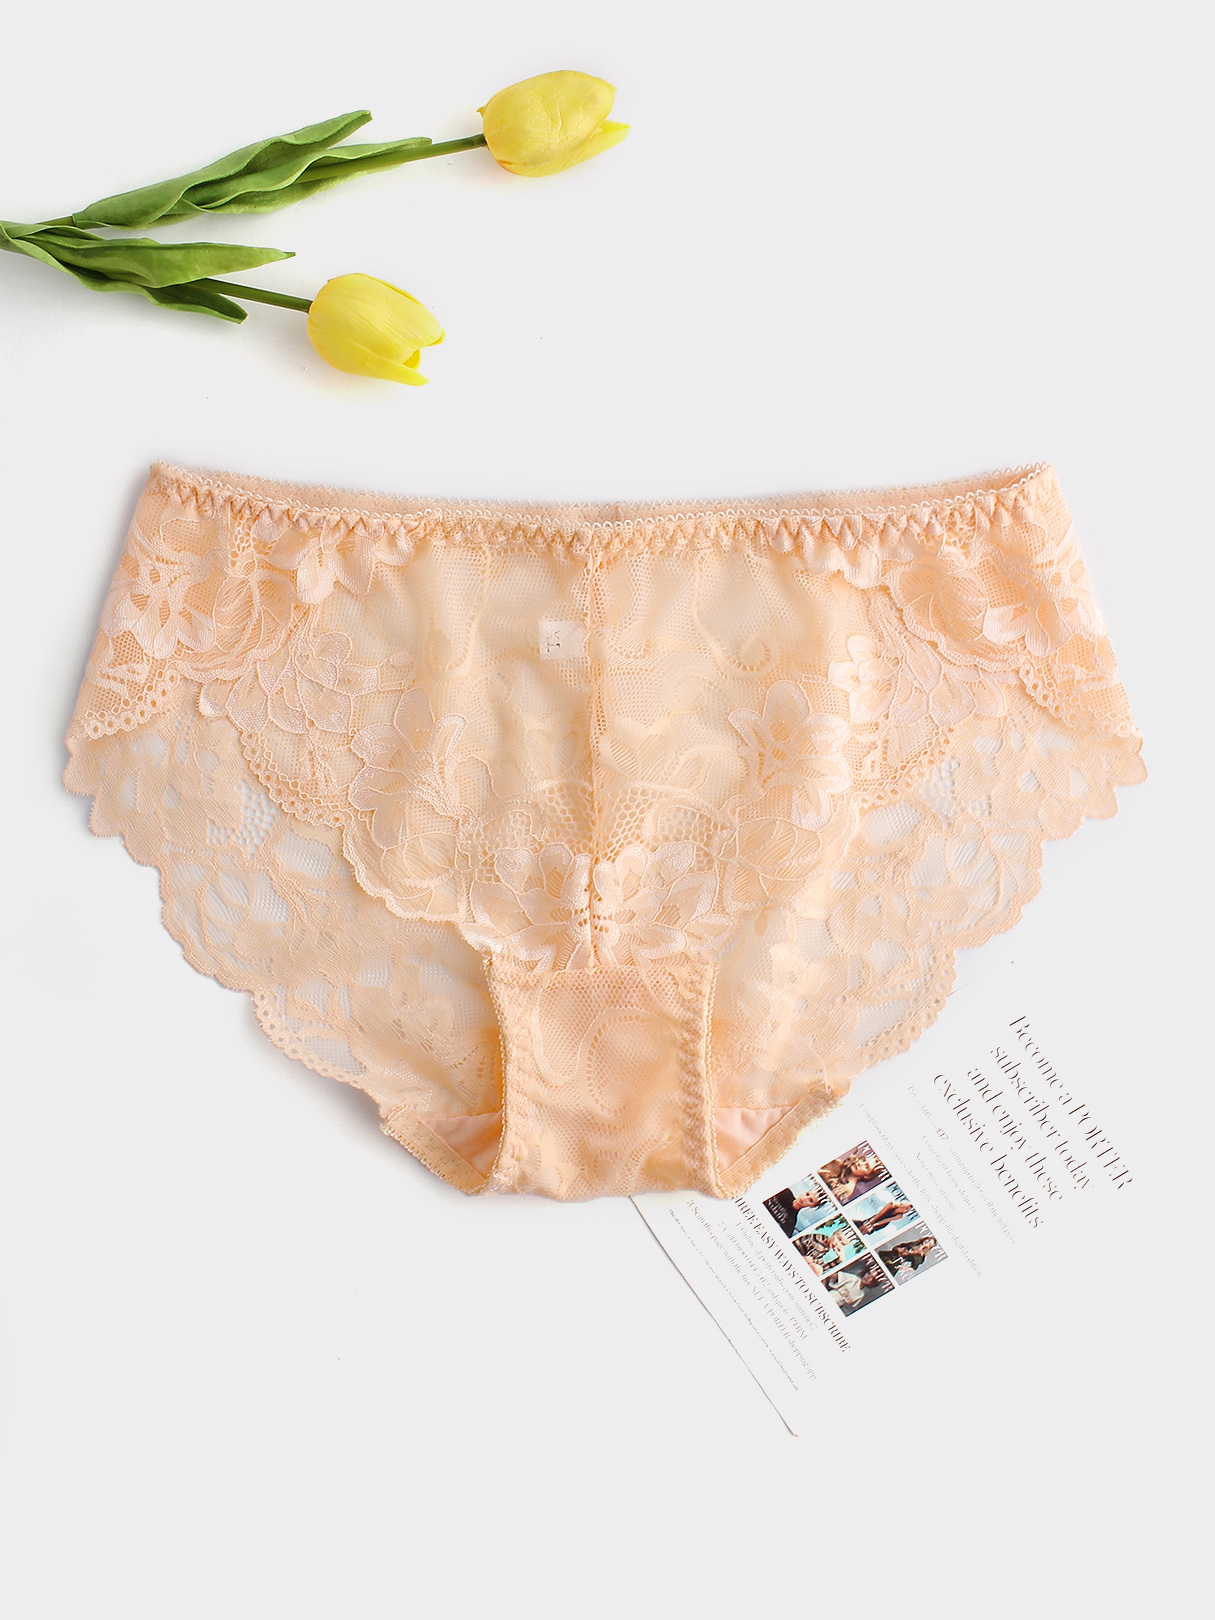 Plus Size Nude Floral Lace Crotchless Panty